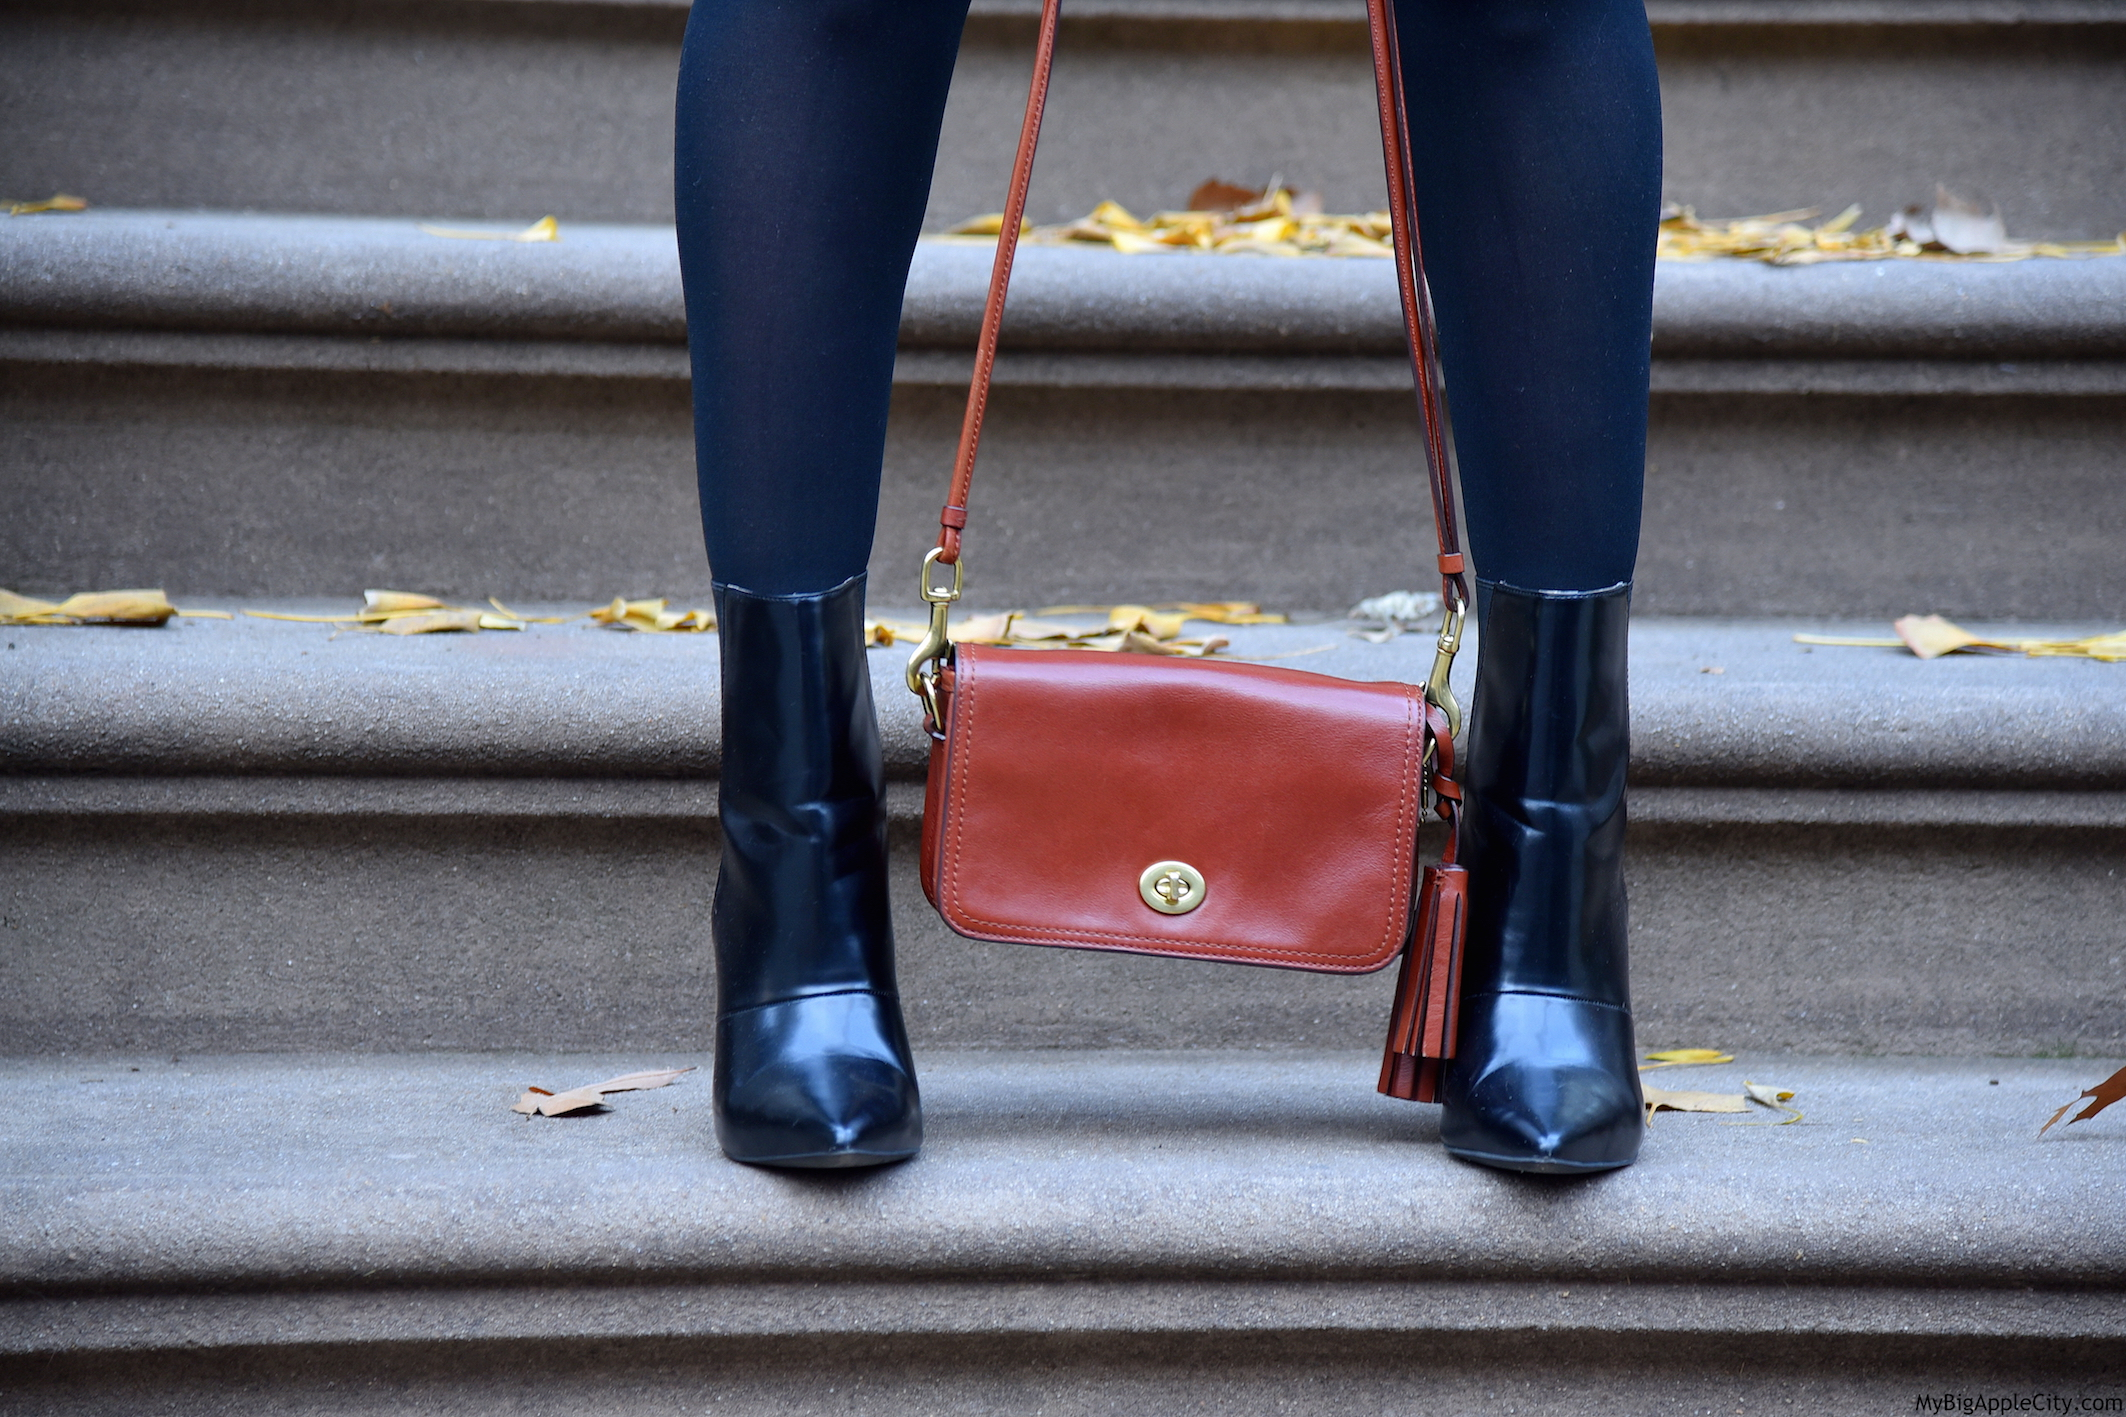 Coach-bag-OOTD-Look-fashionblog-nyc-mybigapplecity